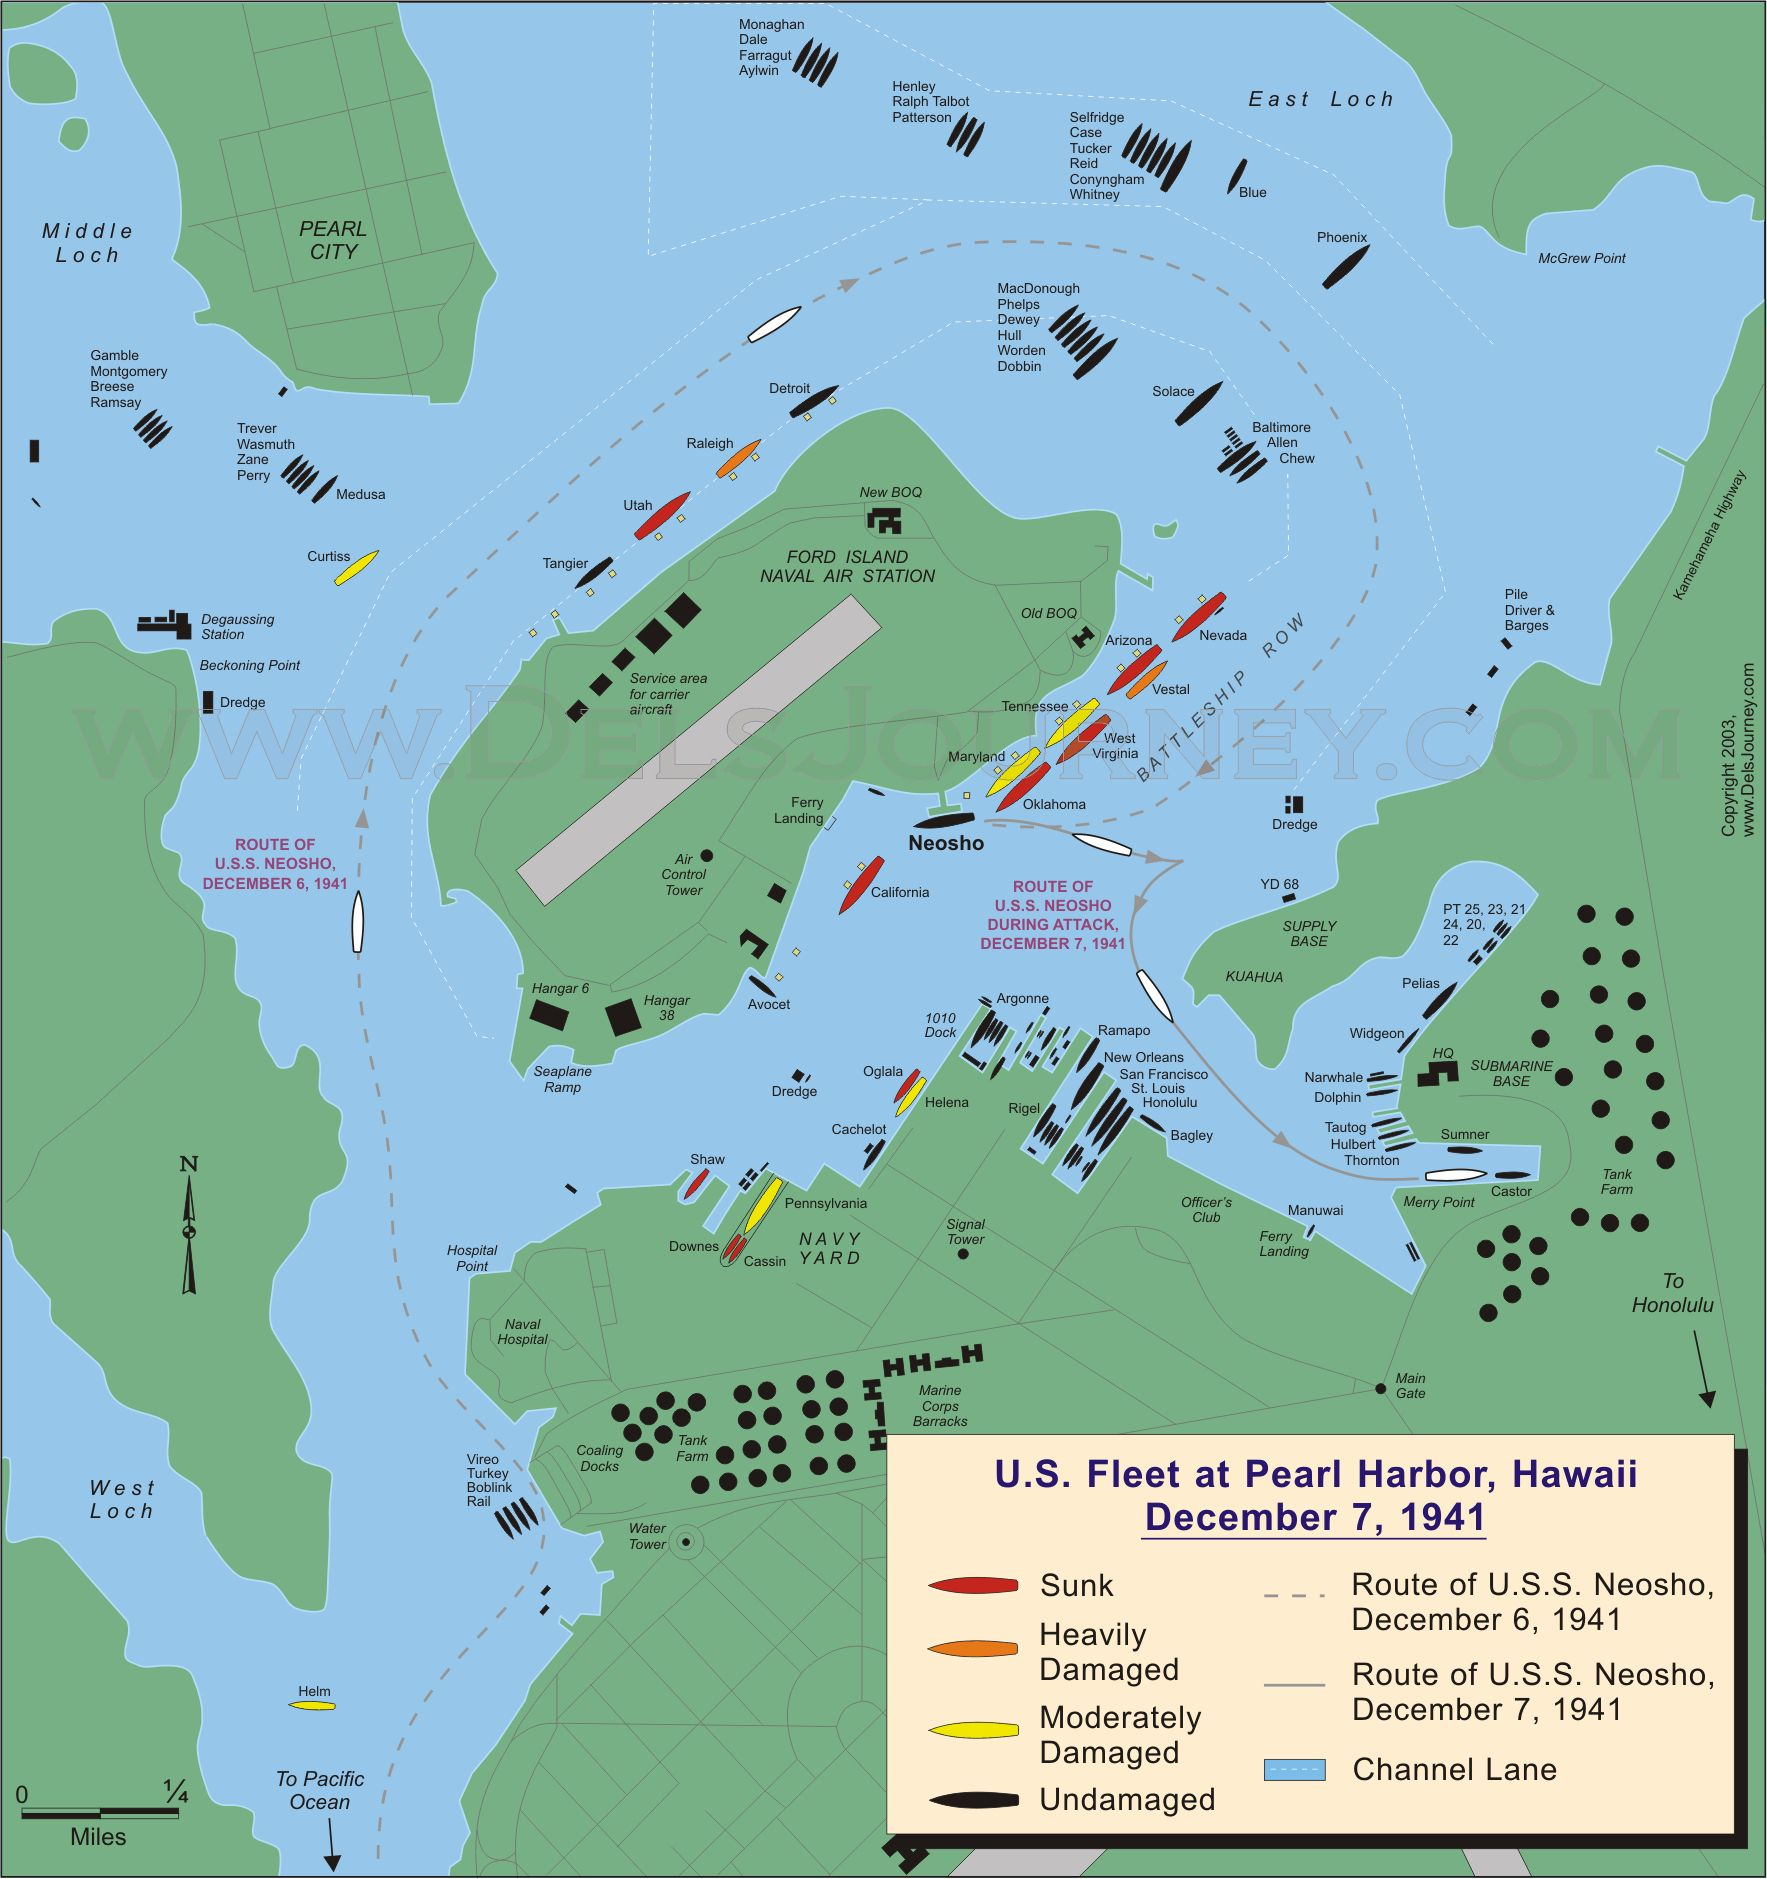 Pin by Ryon Nance on World War II Pinterest